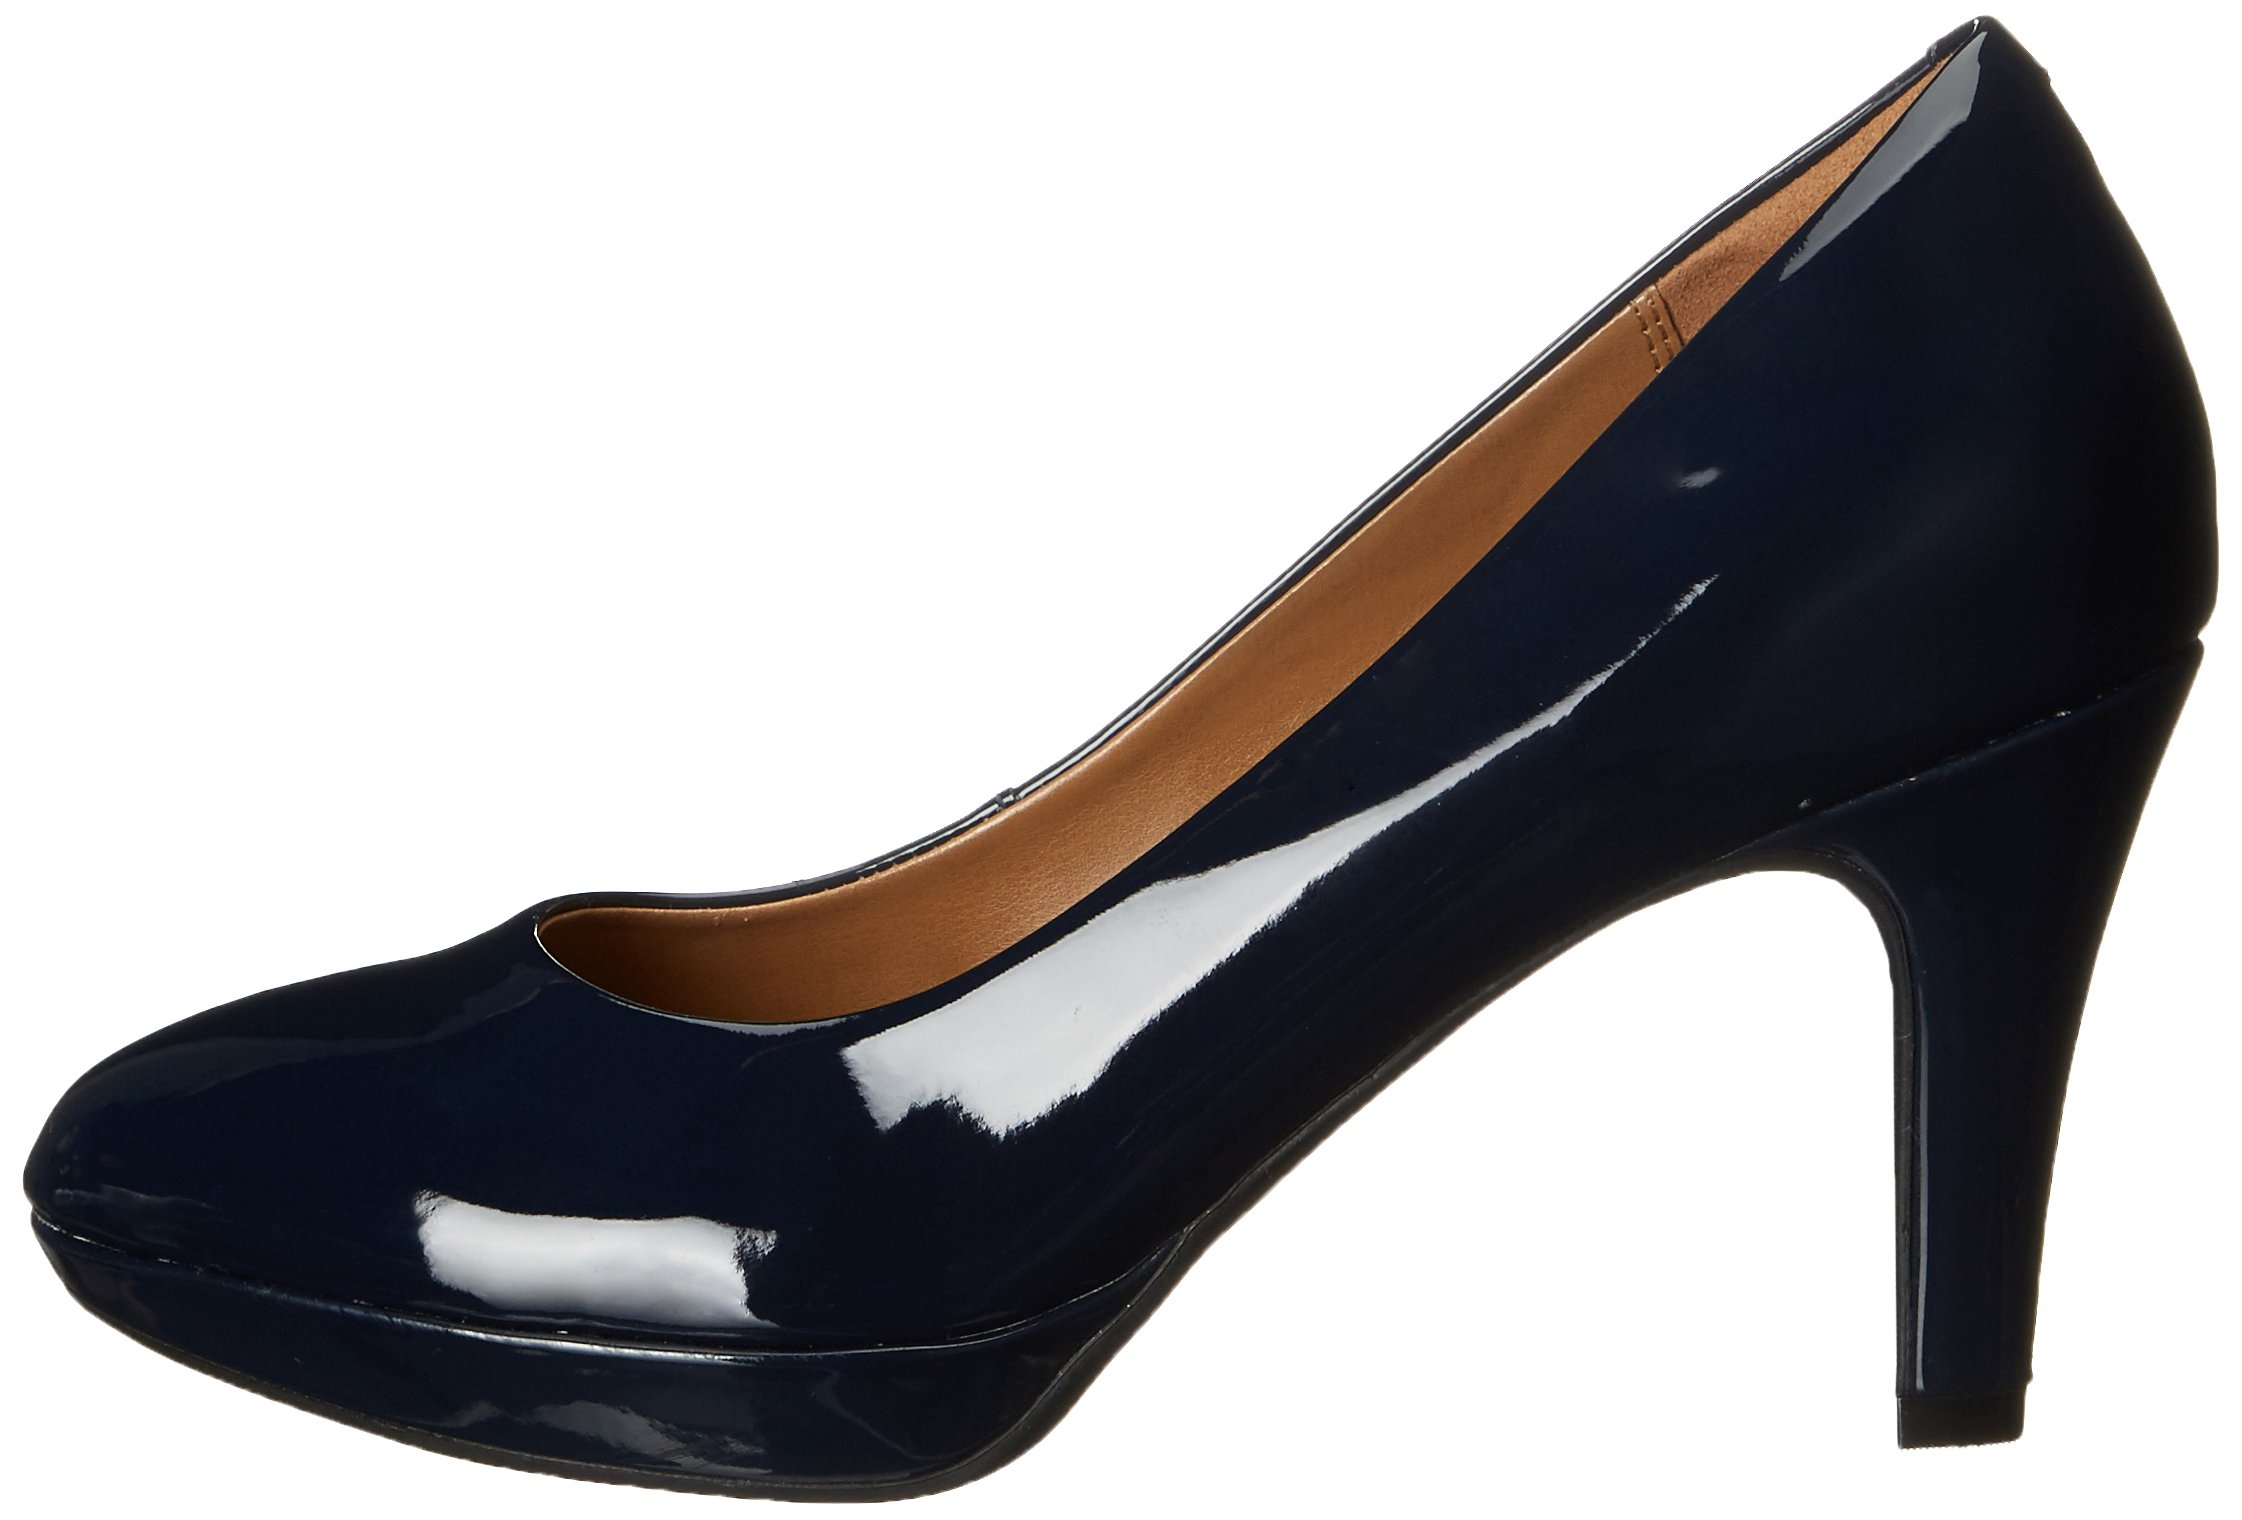 CLARKS Women's Brier Dolly Platform Pump, Navy, 11 W US by CLARKS (Image #5)